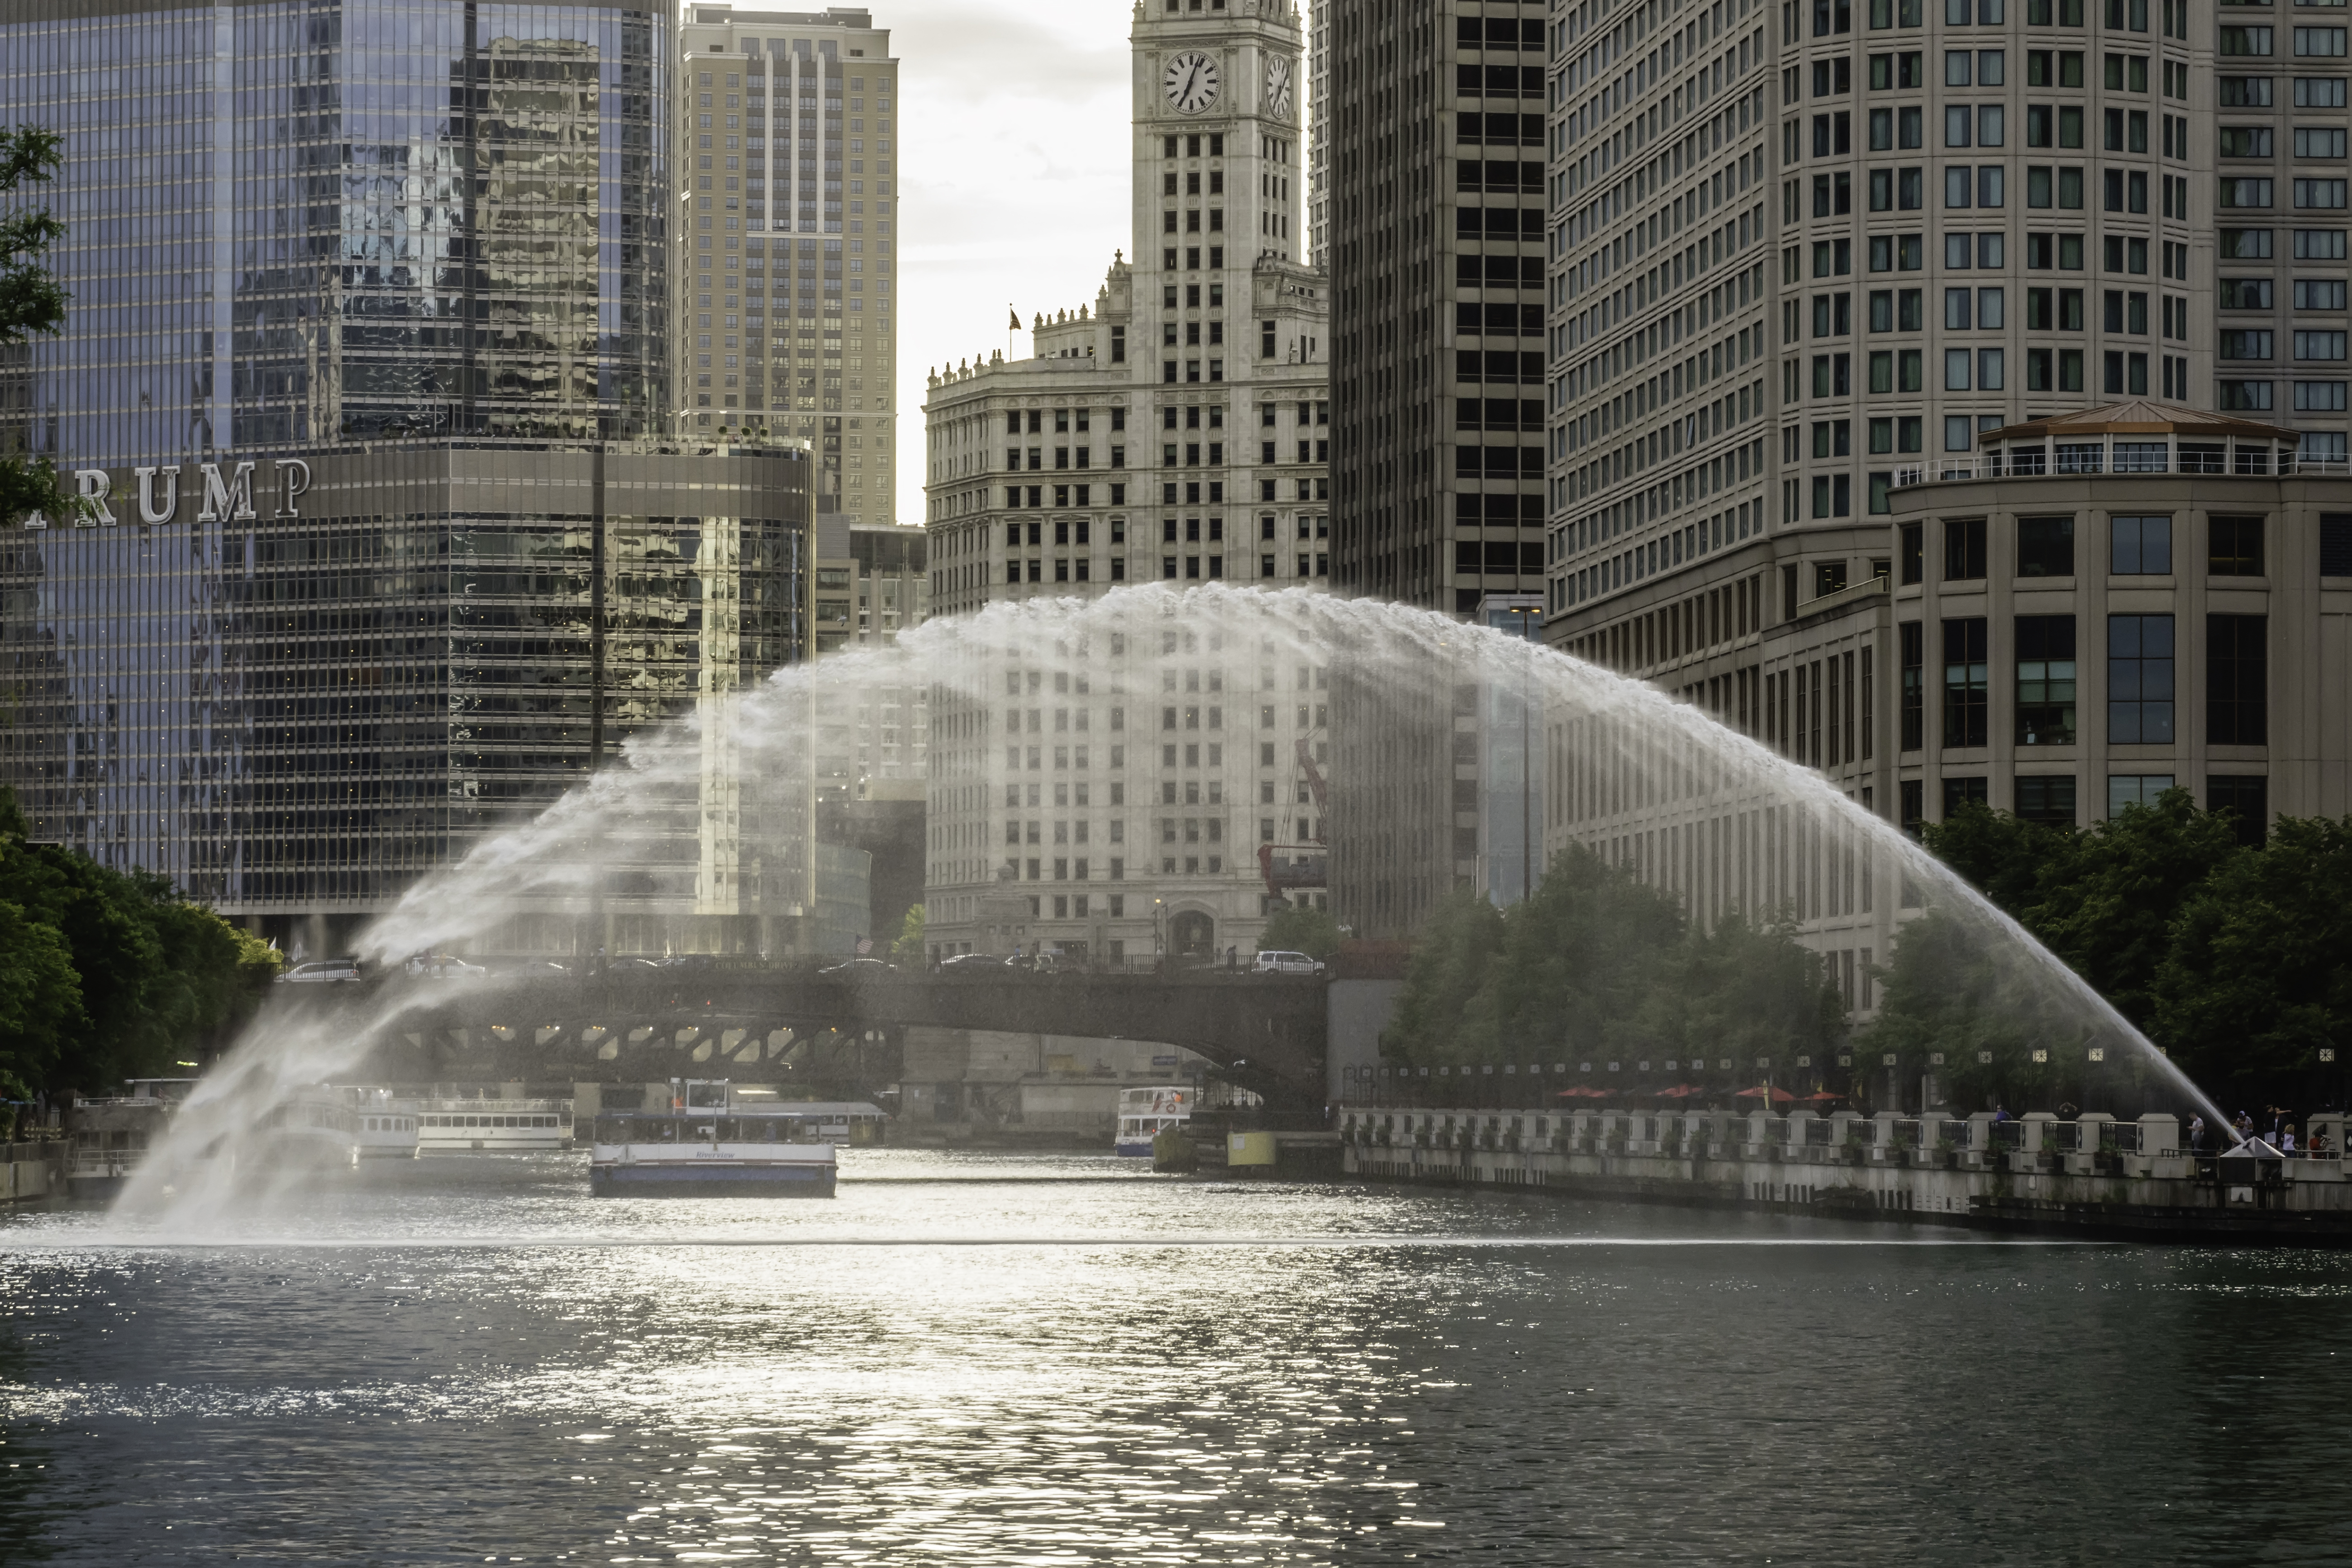 A view down the Chicago River with a fountain spraying from bank to bank.